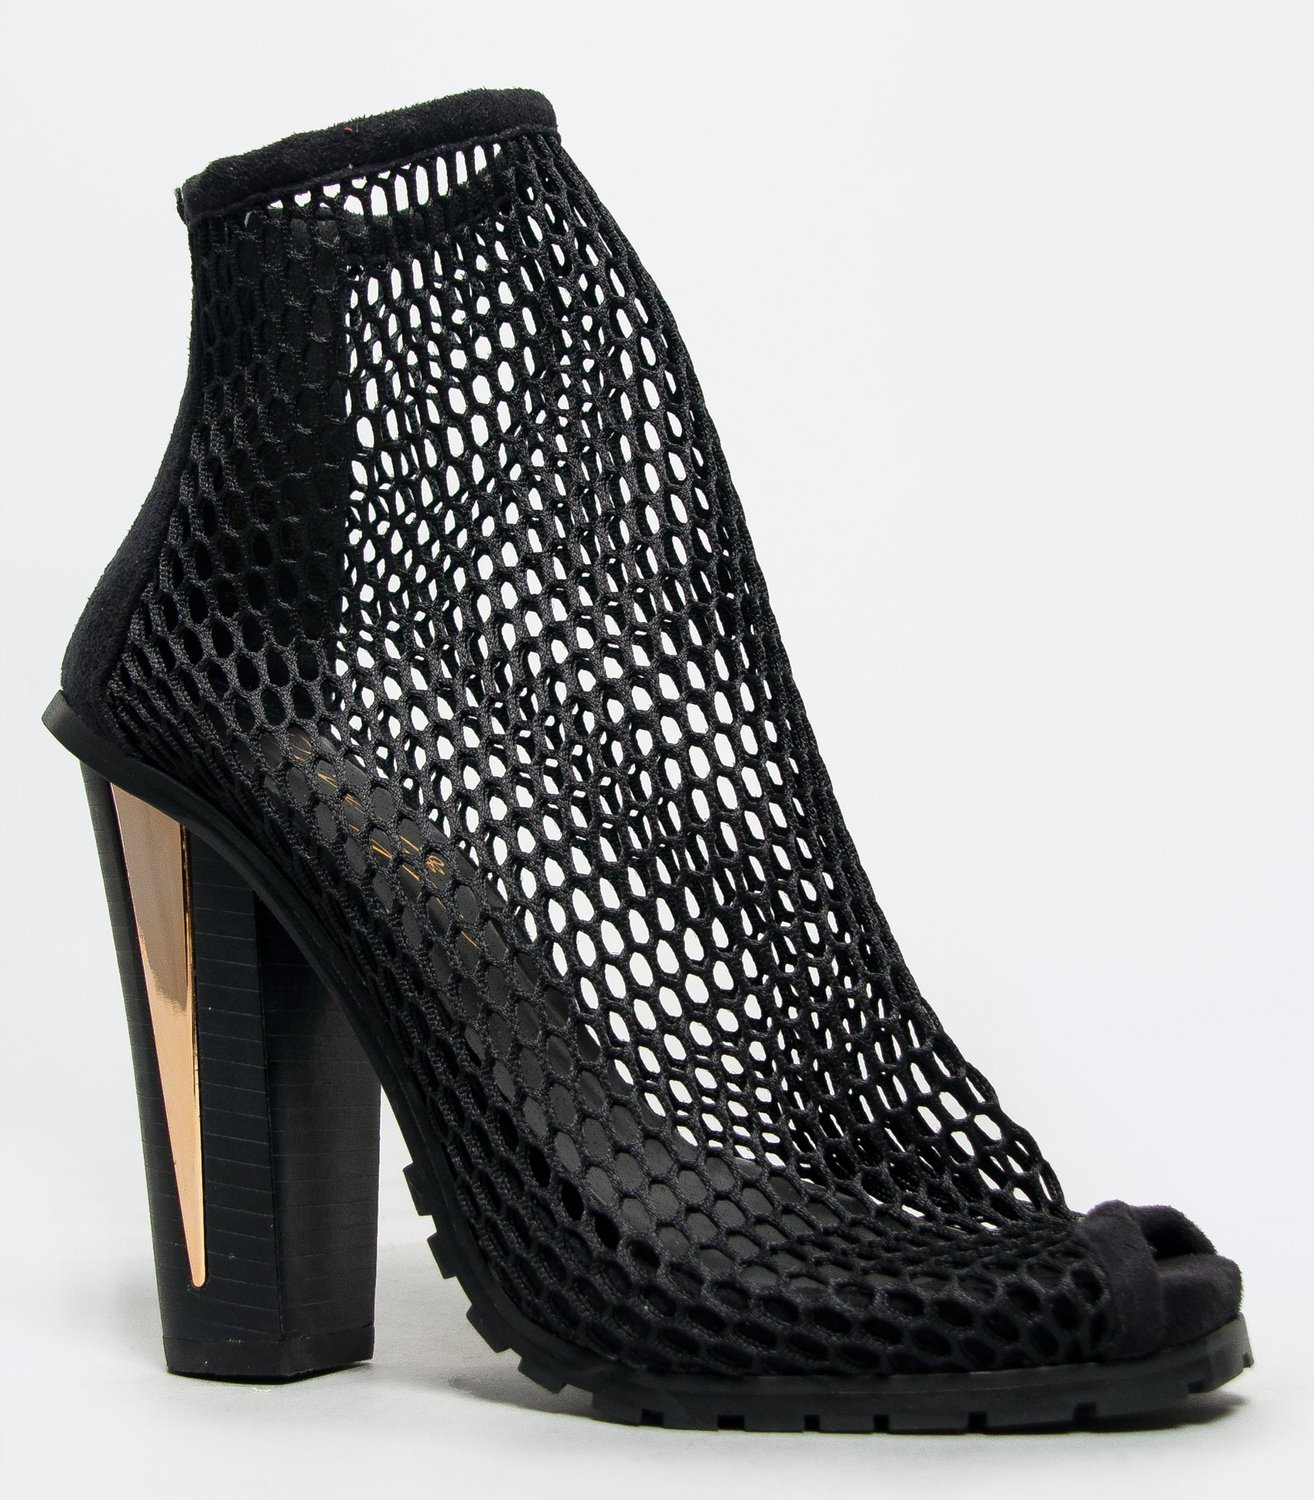 Amazon.com: yara chunky heel peep toe athletic net ankle boot bootie: shoes